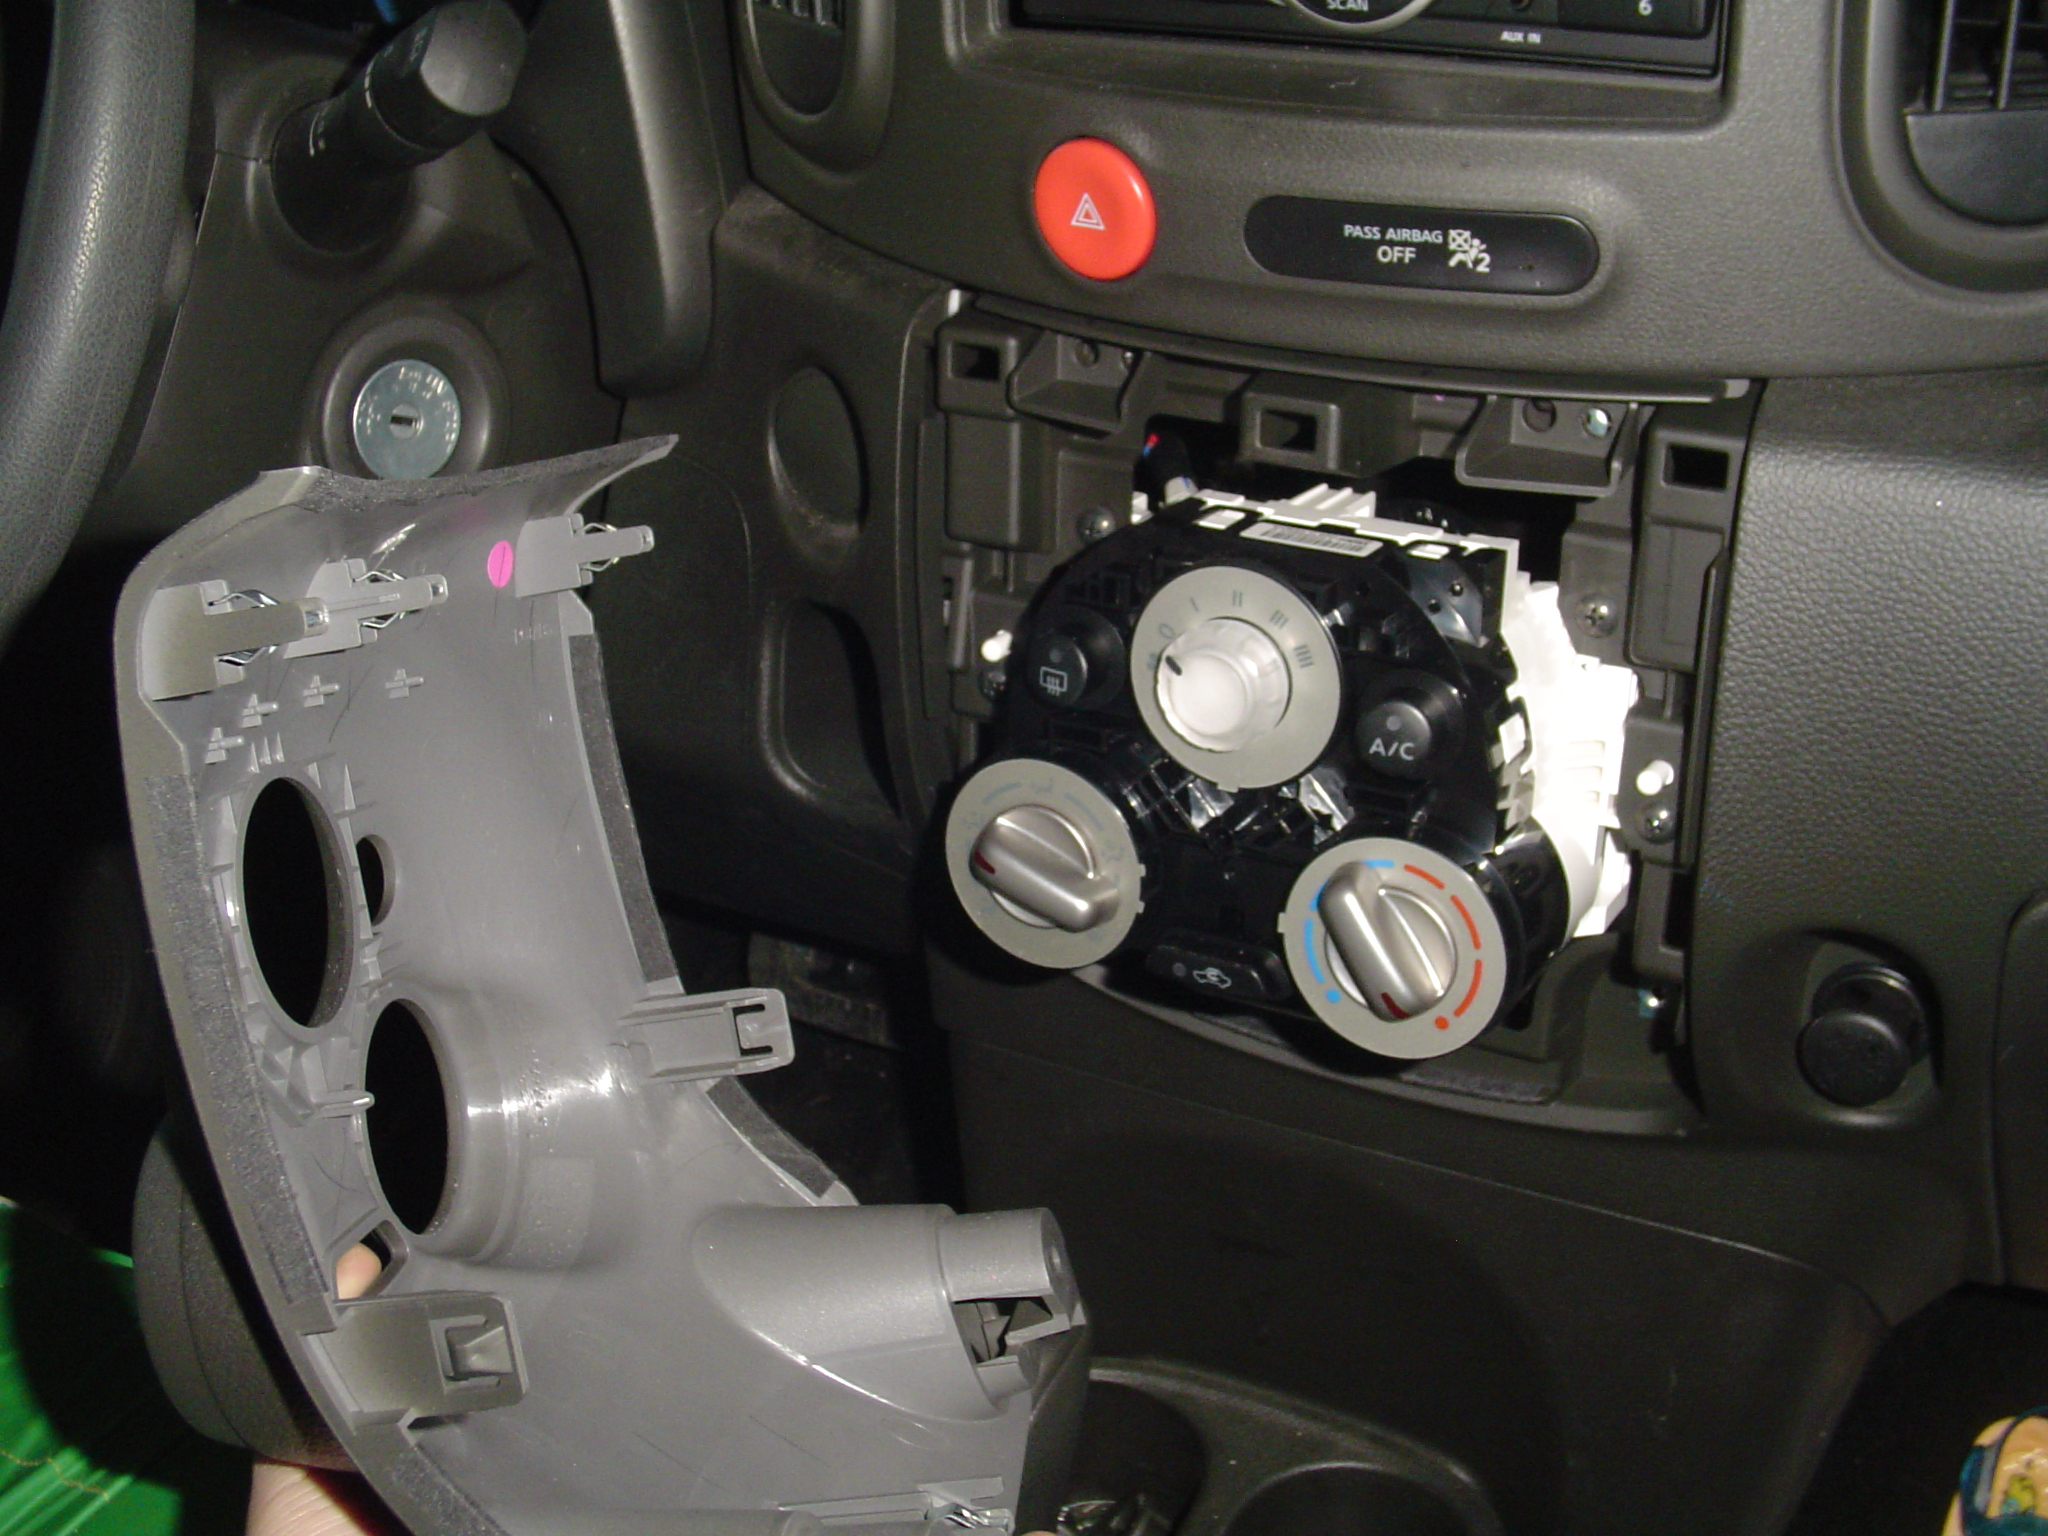 How to install radio in Nissan Cube 2009 2010 2011